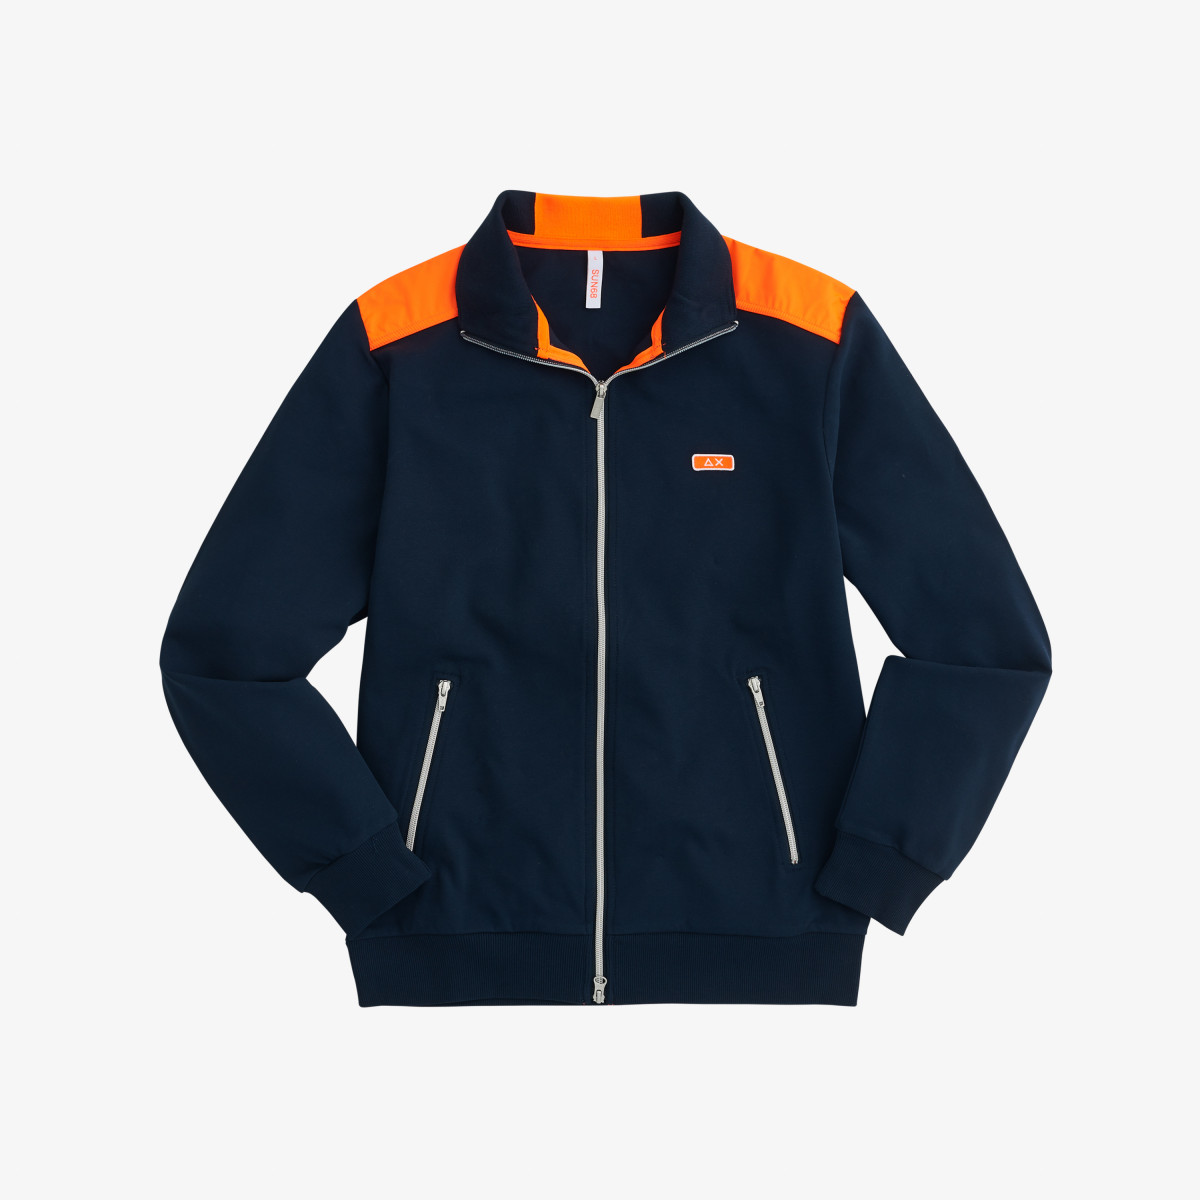 FULL ZIP NYLON FLUO COTT. FL. NAVY BLUE